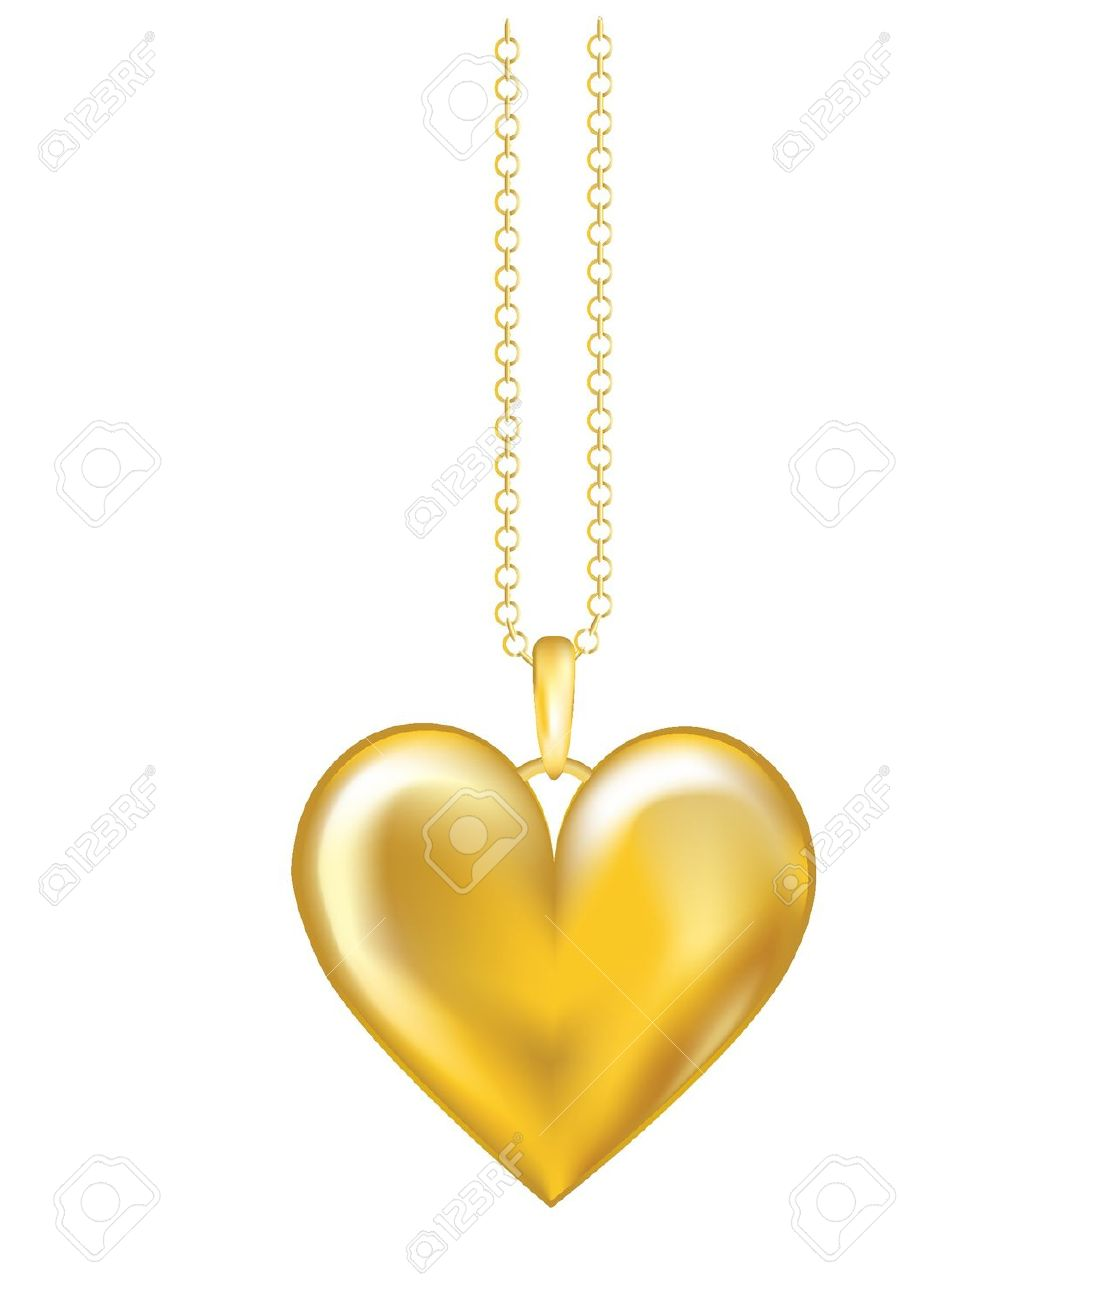 Simple Locket Clipart.